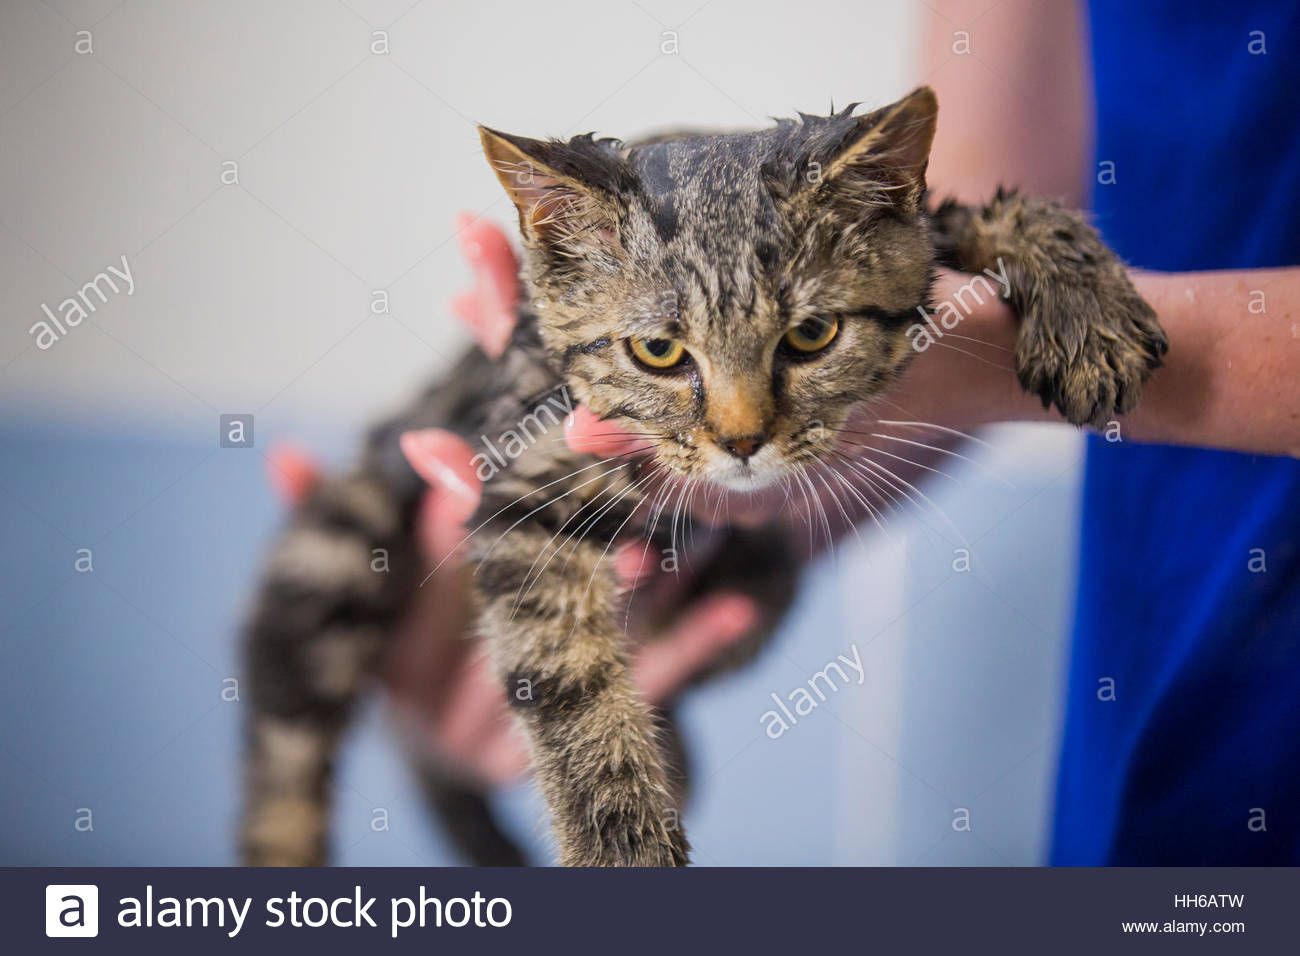 Person holding cute British cat after shower. Looking at camera. - Stock Image